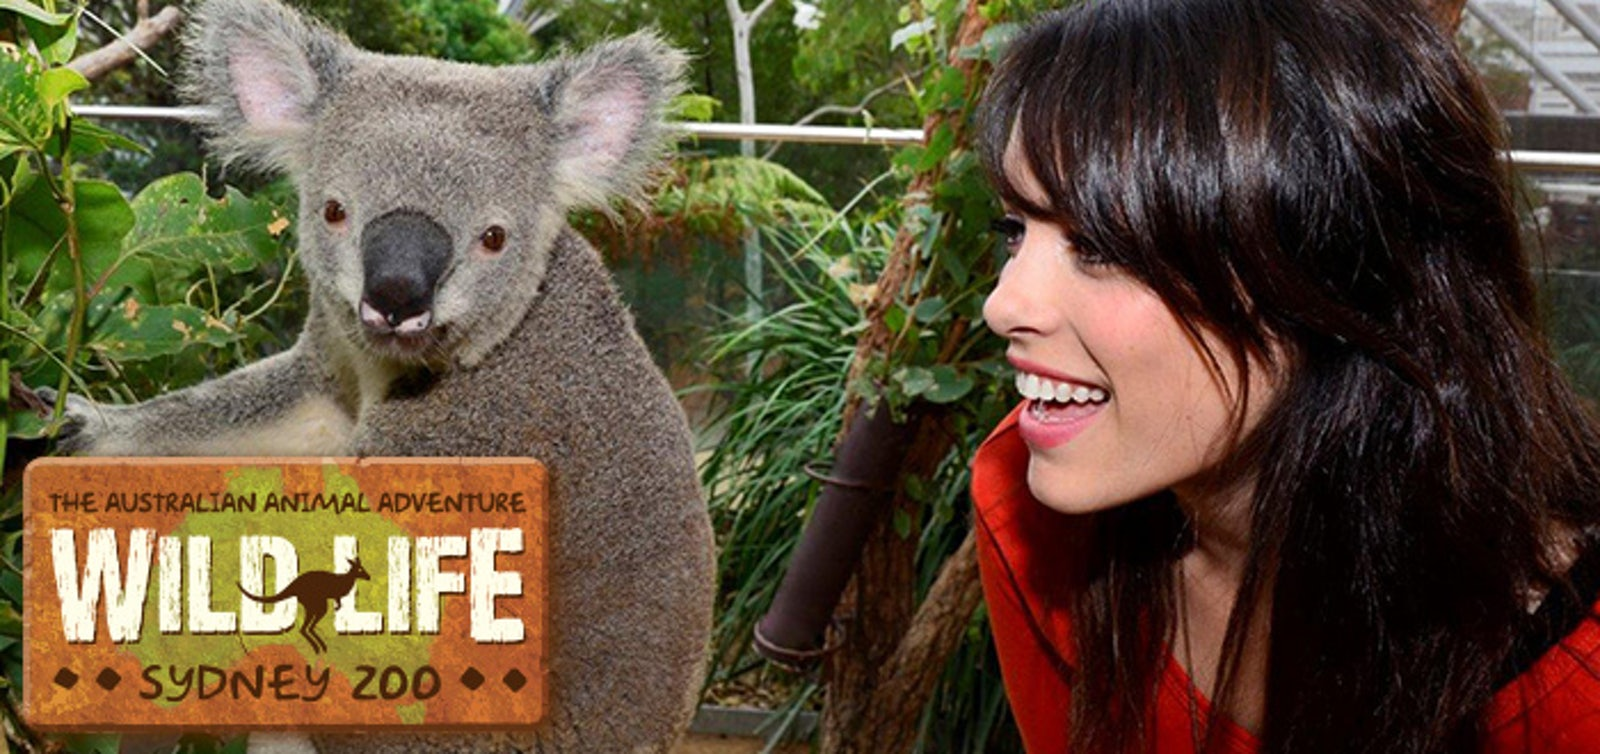 A promotional picture from the Sydney Zoo which is located near Surry Hills